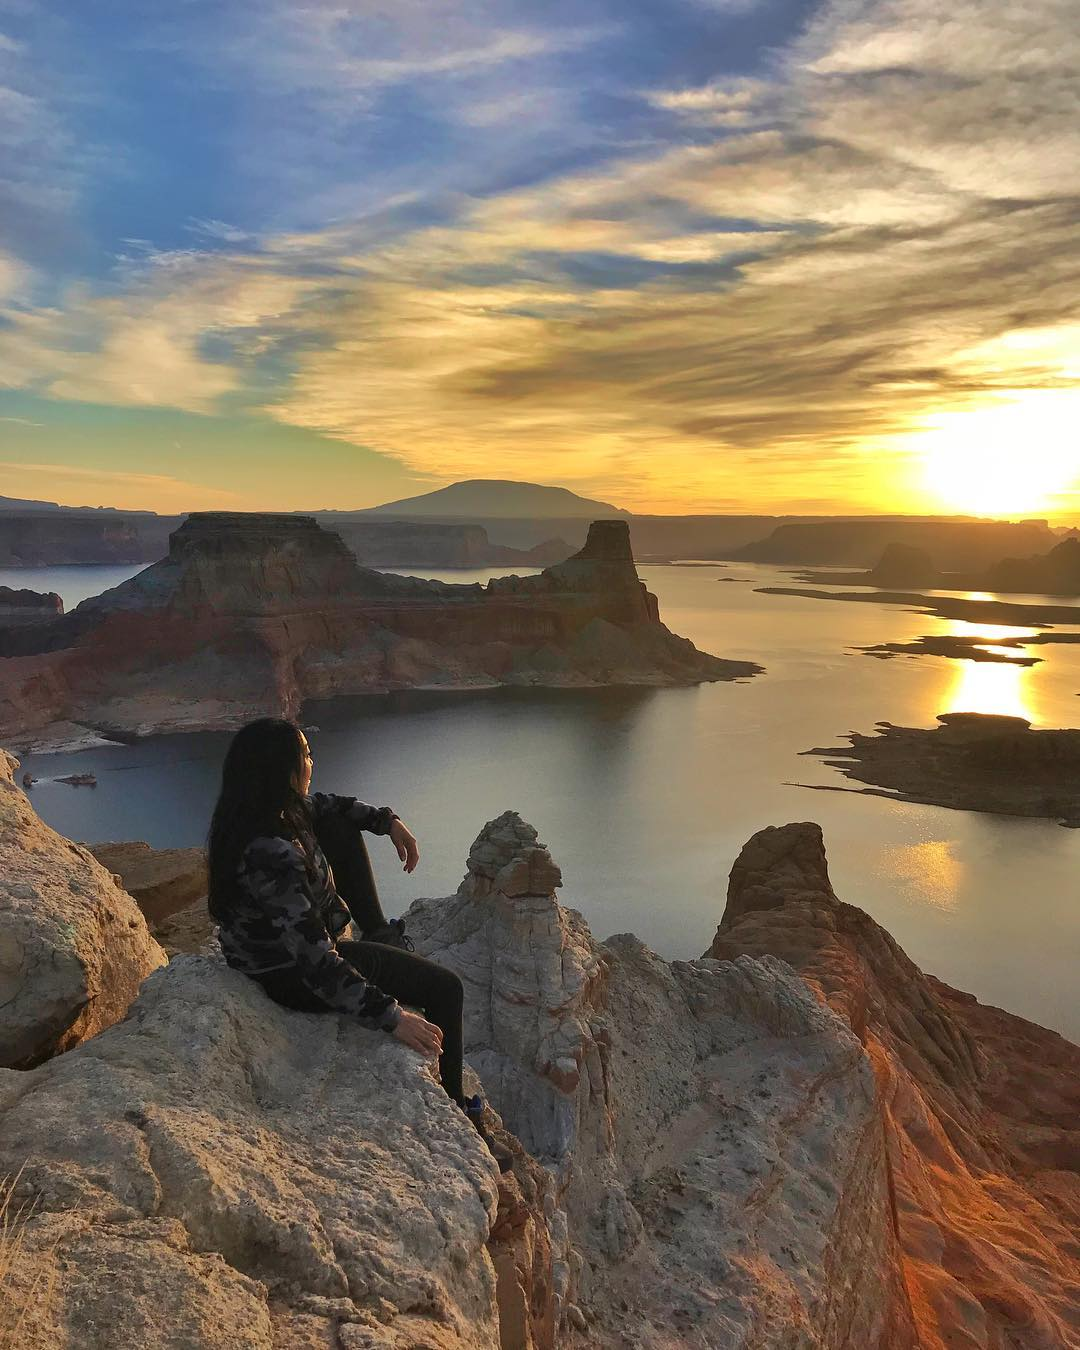 Catching sunrise over Lake Powell……